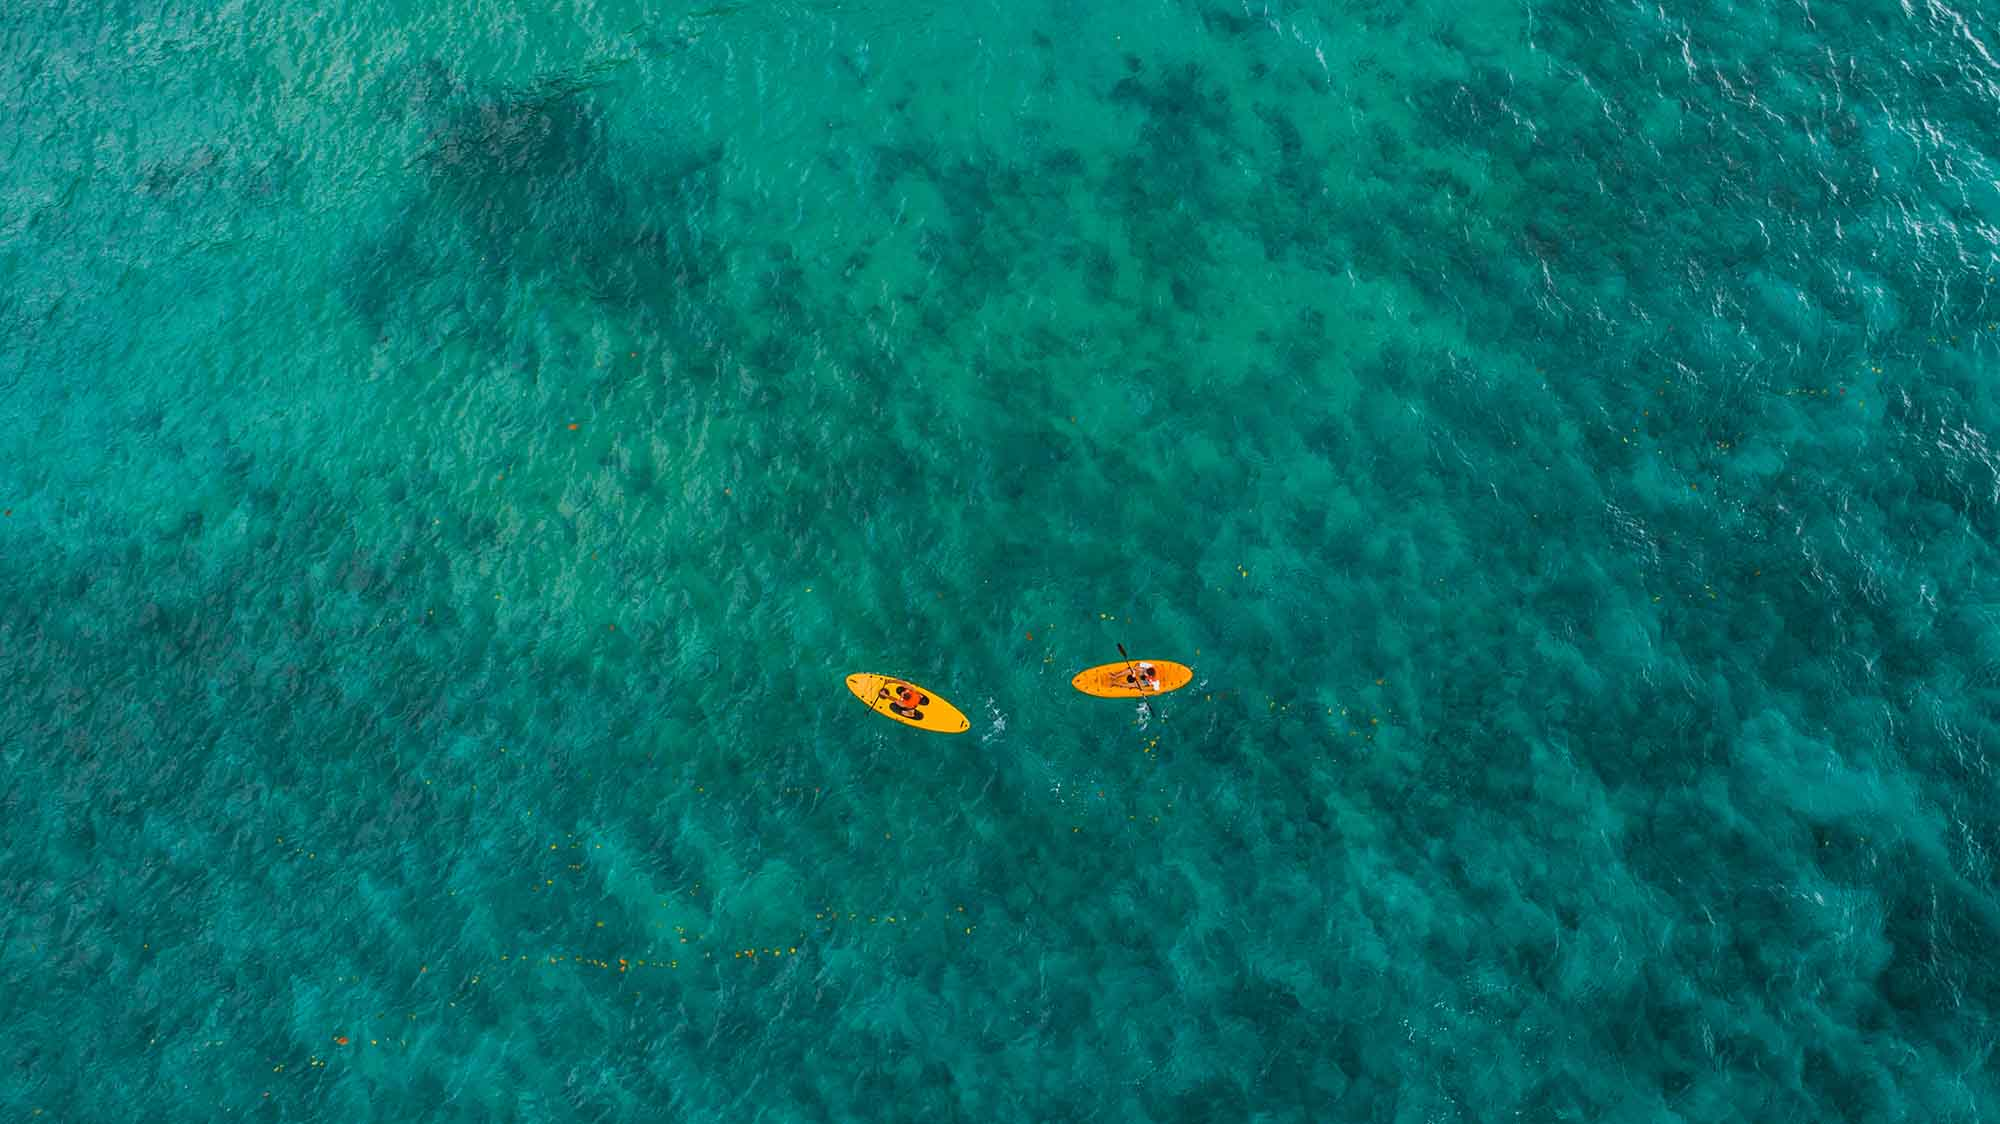 Water Sport Aerial Photography